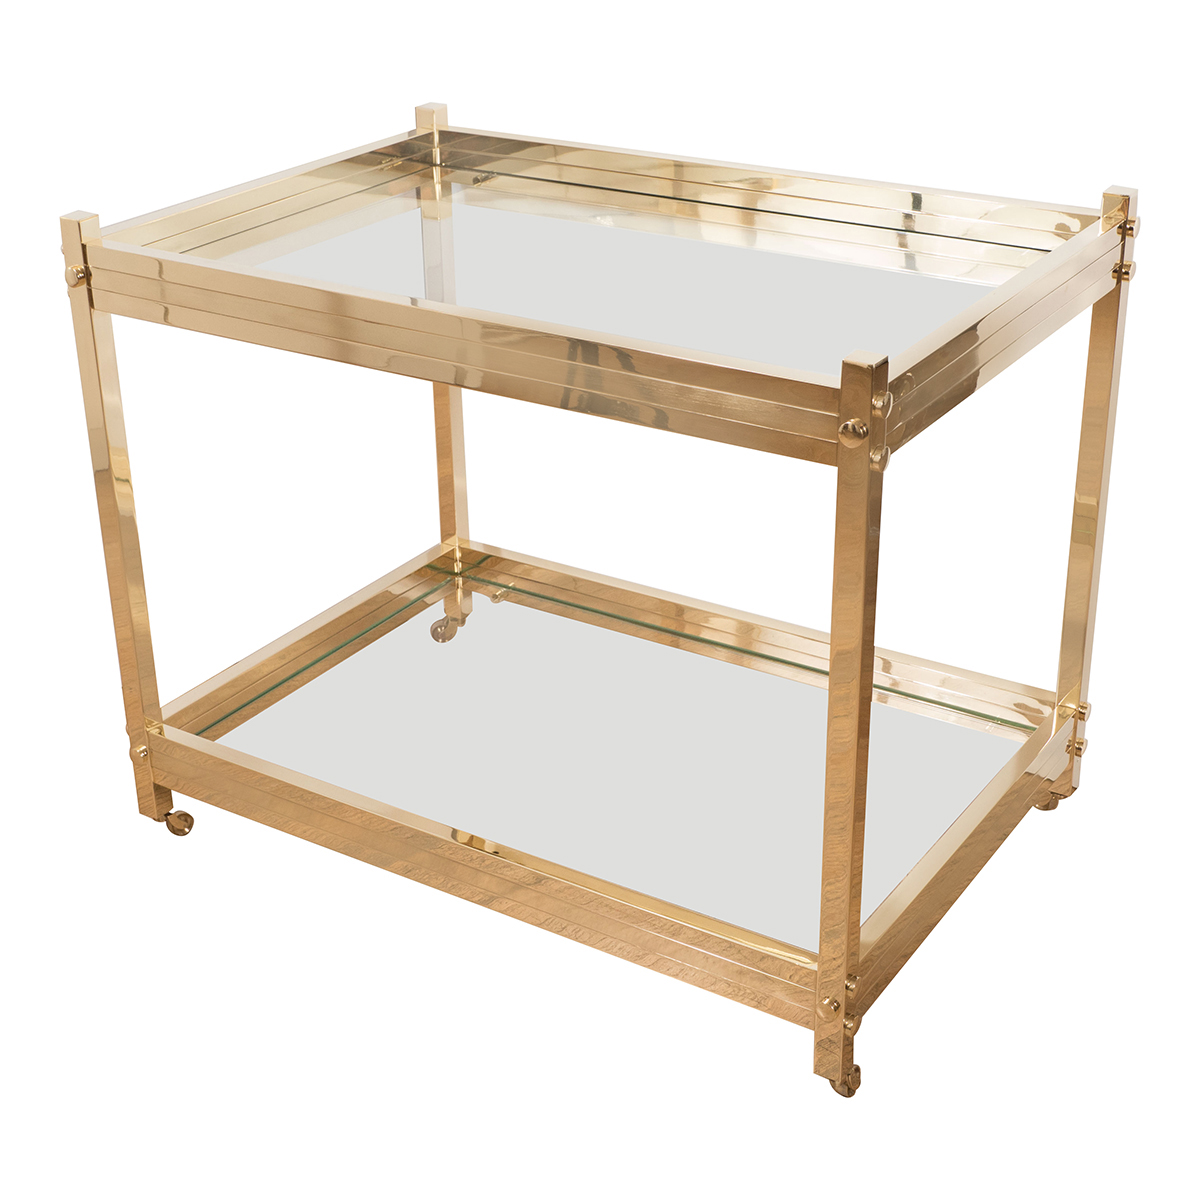 Two Tier Brass And Glass Rolling Bar Cart Serving Carts